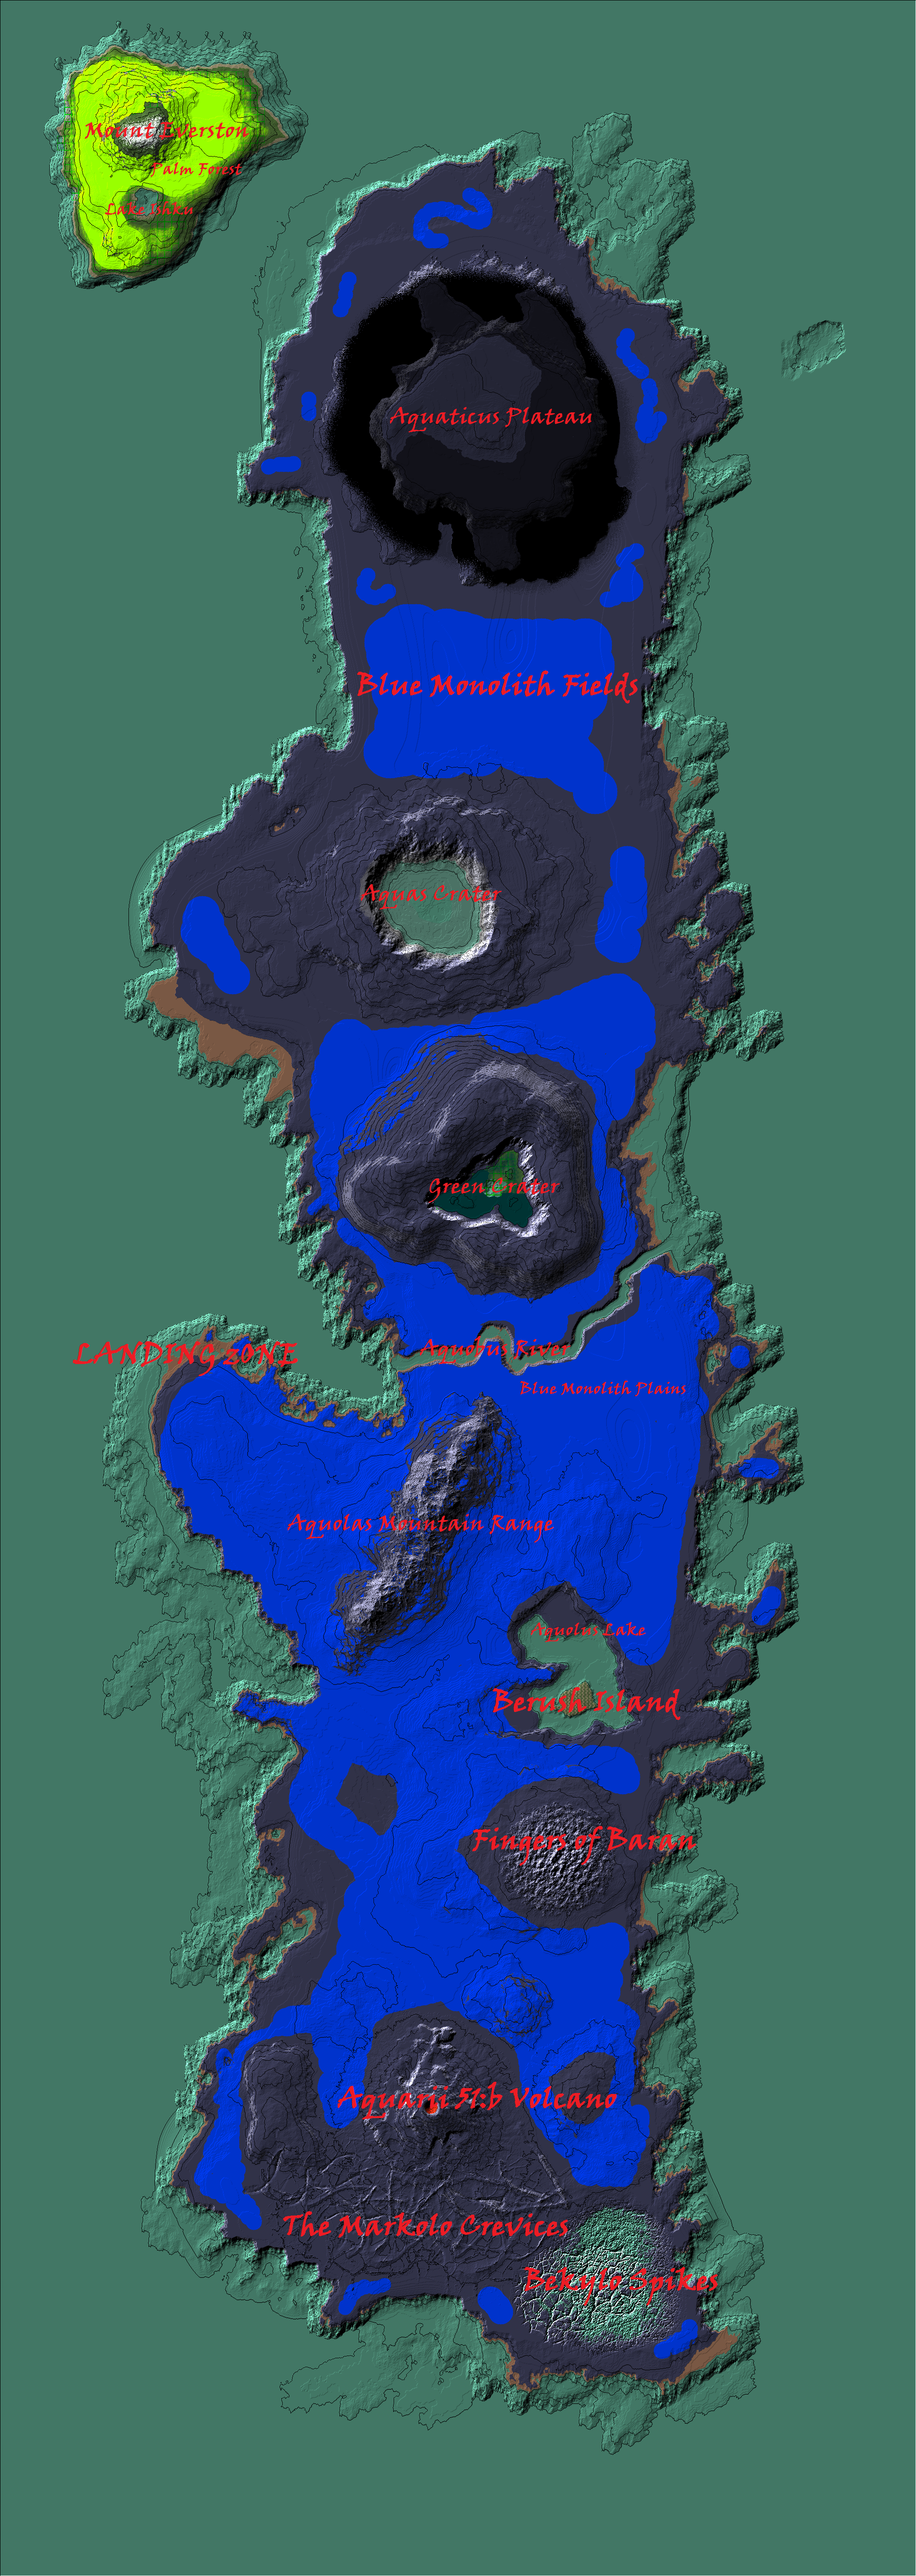 Aquarii 51 Survival Map by Raysss